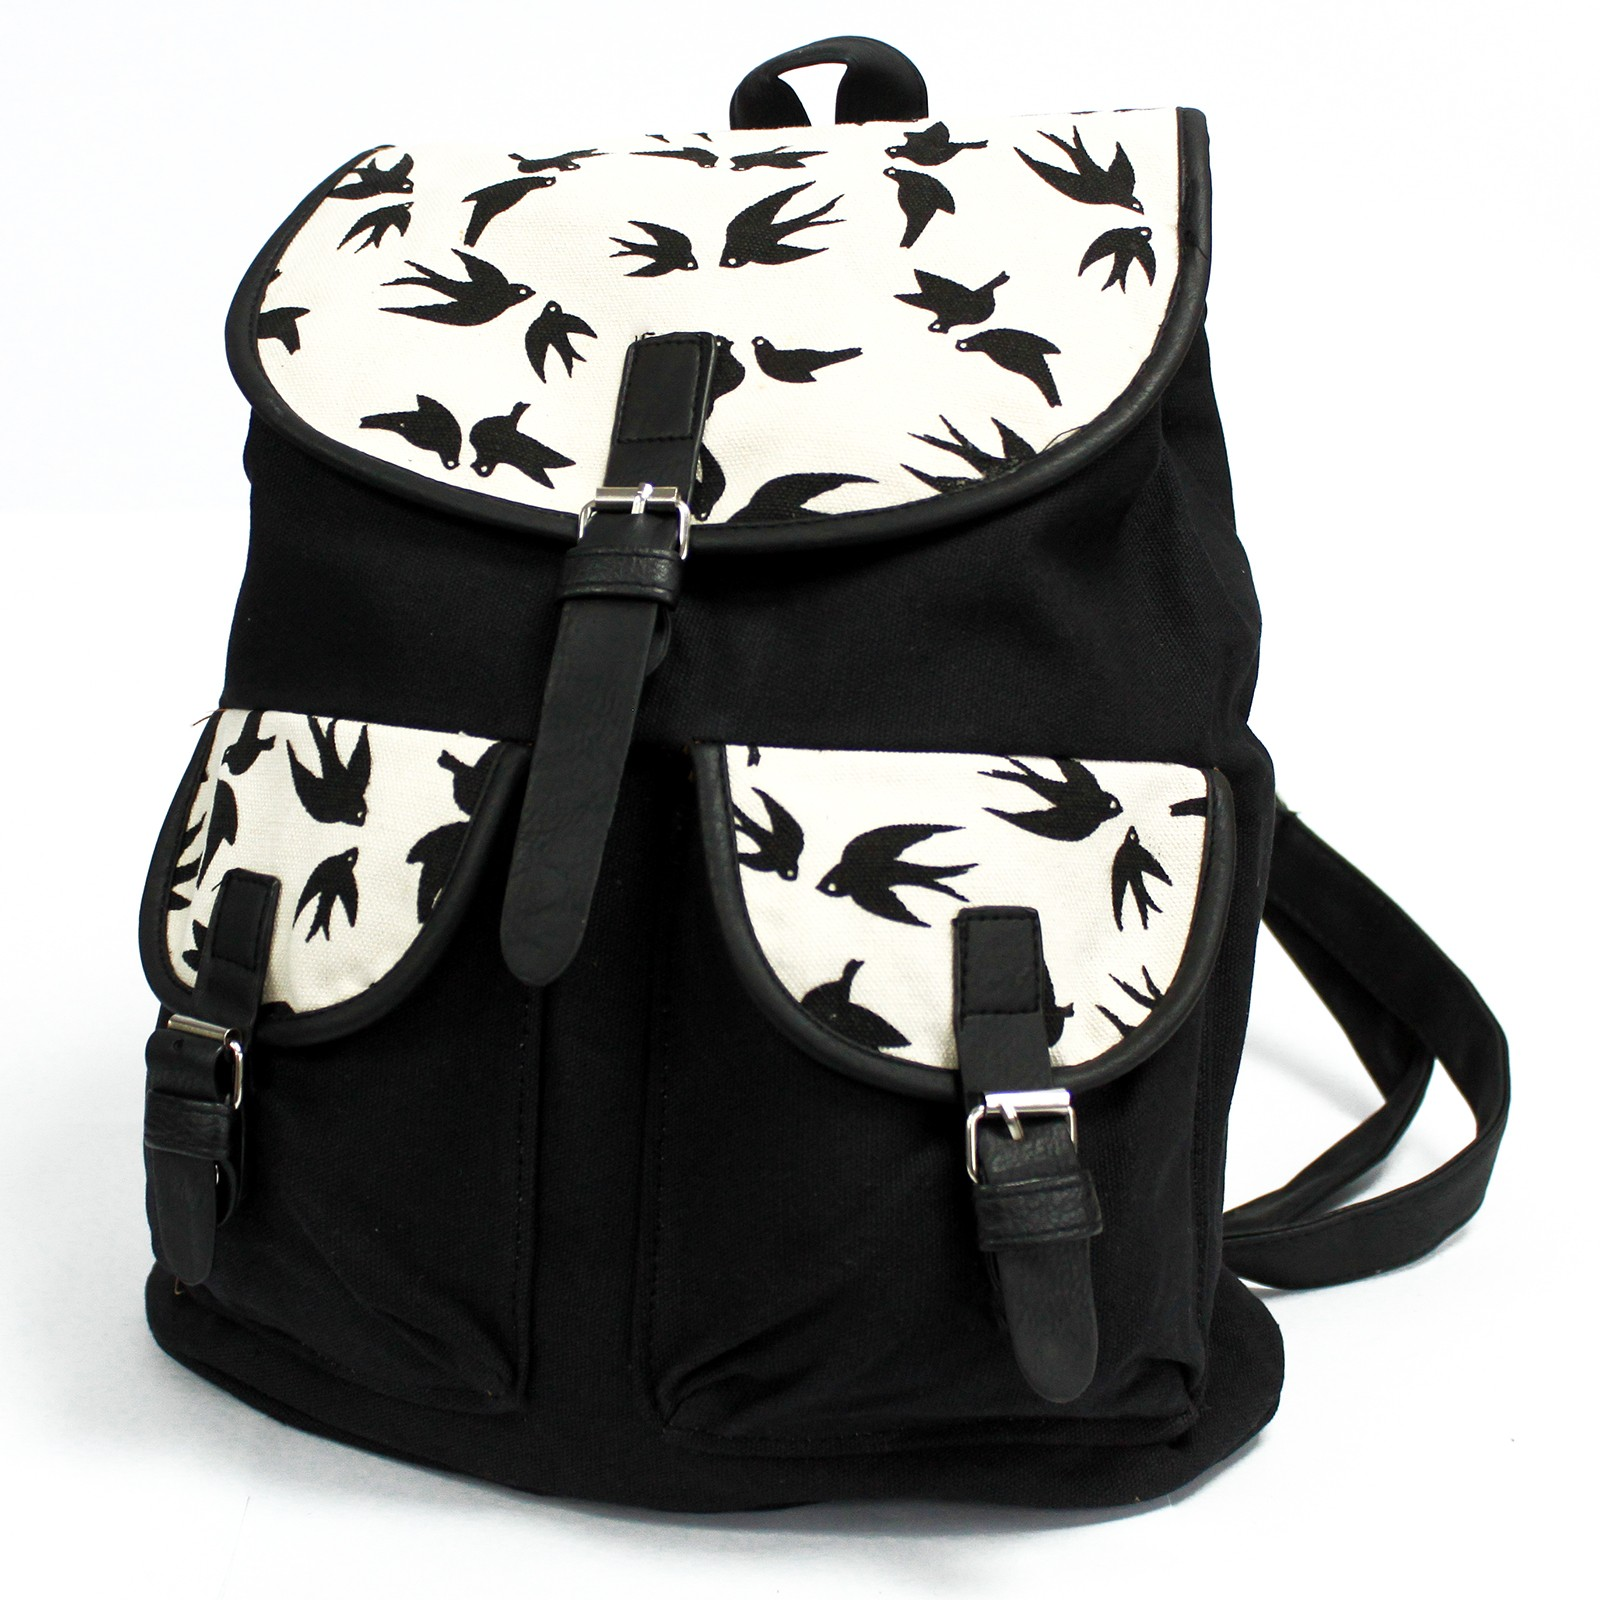 Traveller Backpacks  2 Pocket Black Swallows